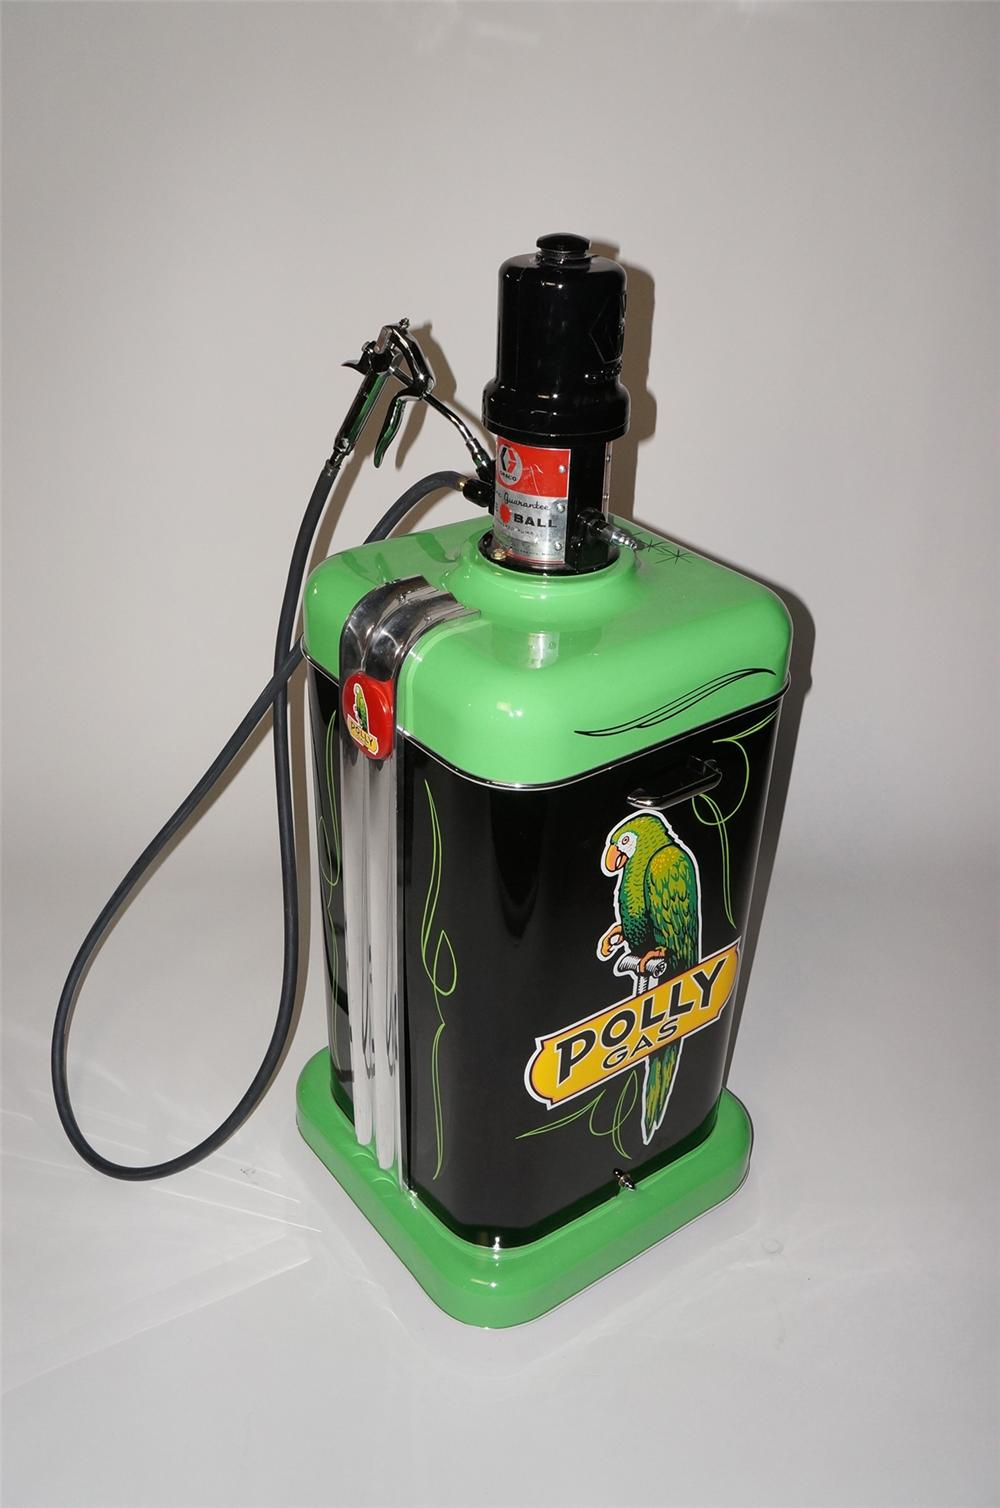 Killer 1950s restored Polly Oil Graco Air Power Fire Ball service department greaser on wheels. - Front 3/4 - 130614